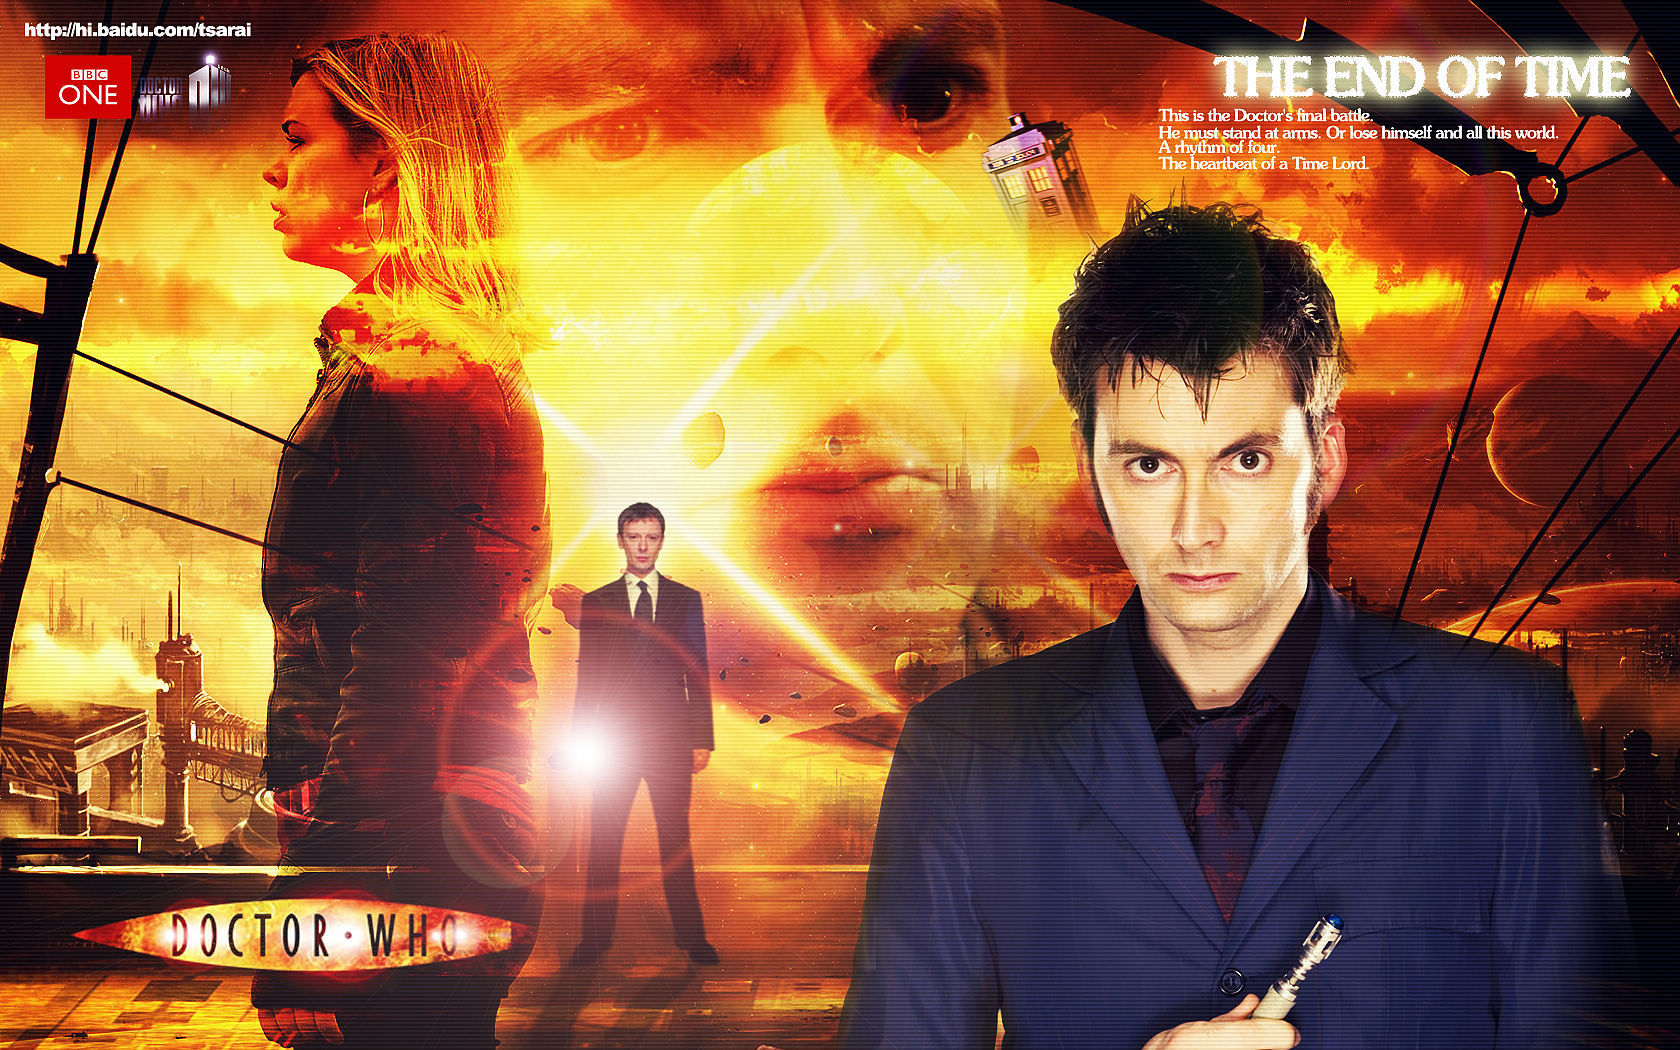 DOCTOR WHO - Doctor Who Wallpaper (9642708) - Fanpop